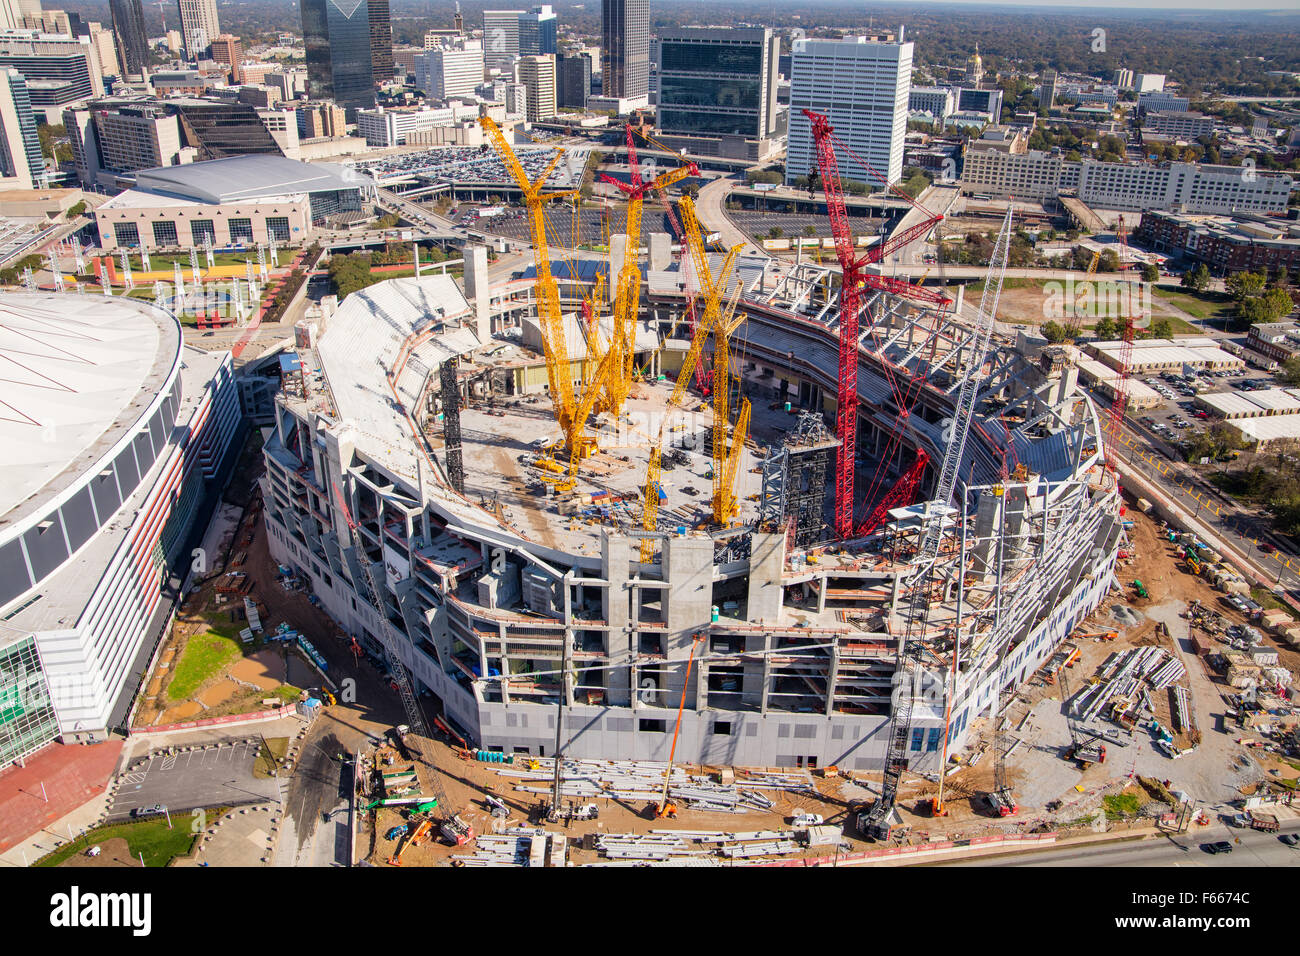 Aerial Photograph of Atlanta, Georgia USA taken on 11/10/2015 showing construction of the Mercedes Benz Stadium - Stock Image